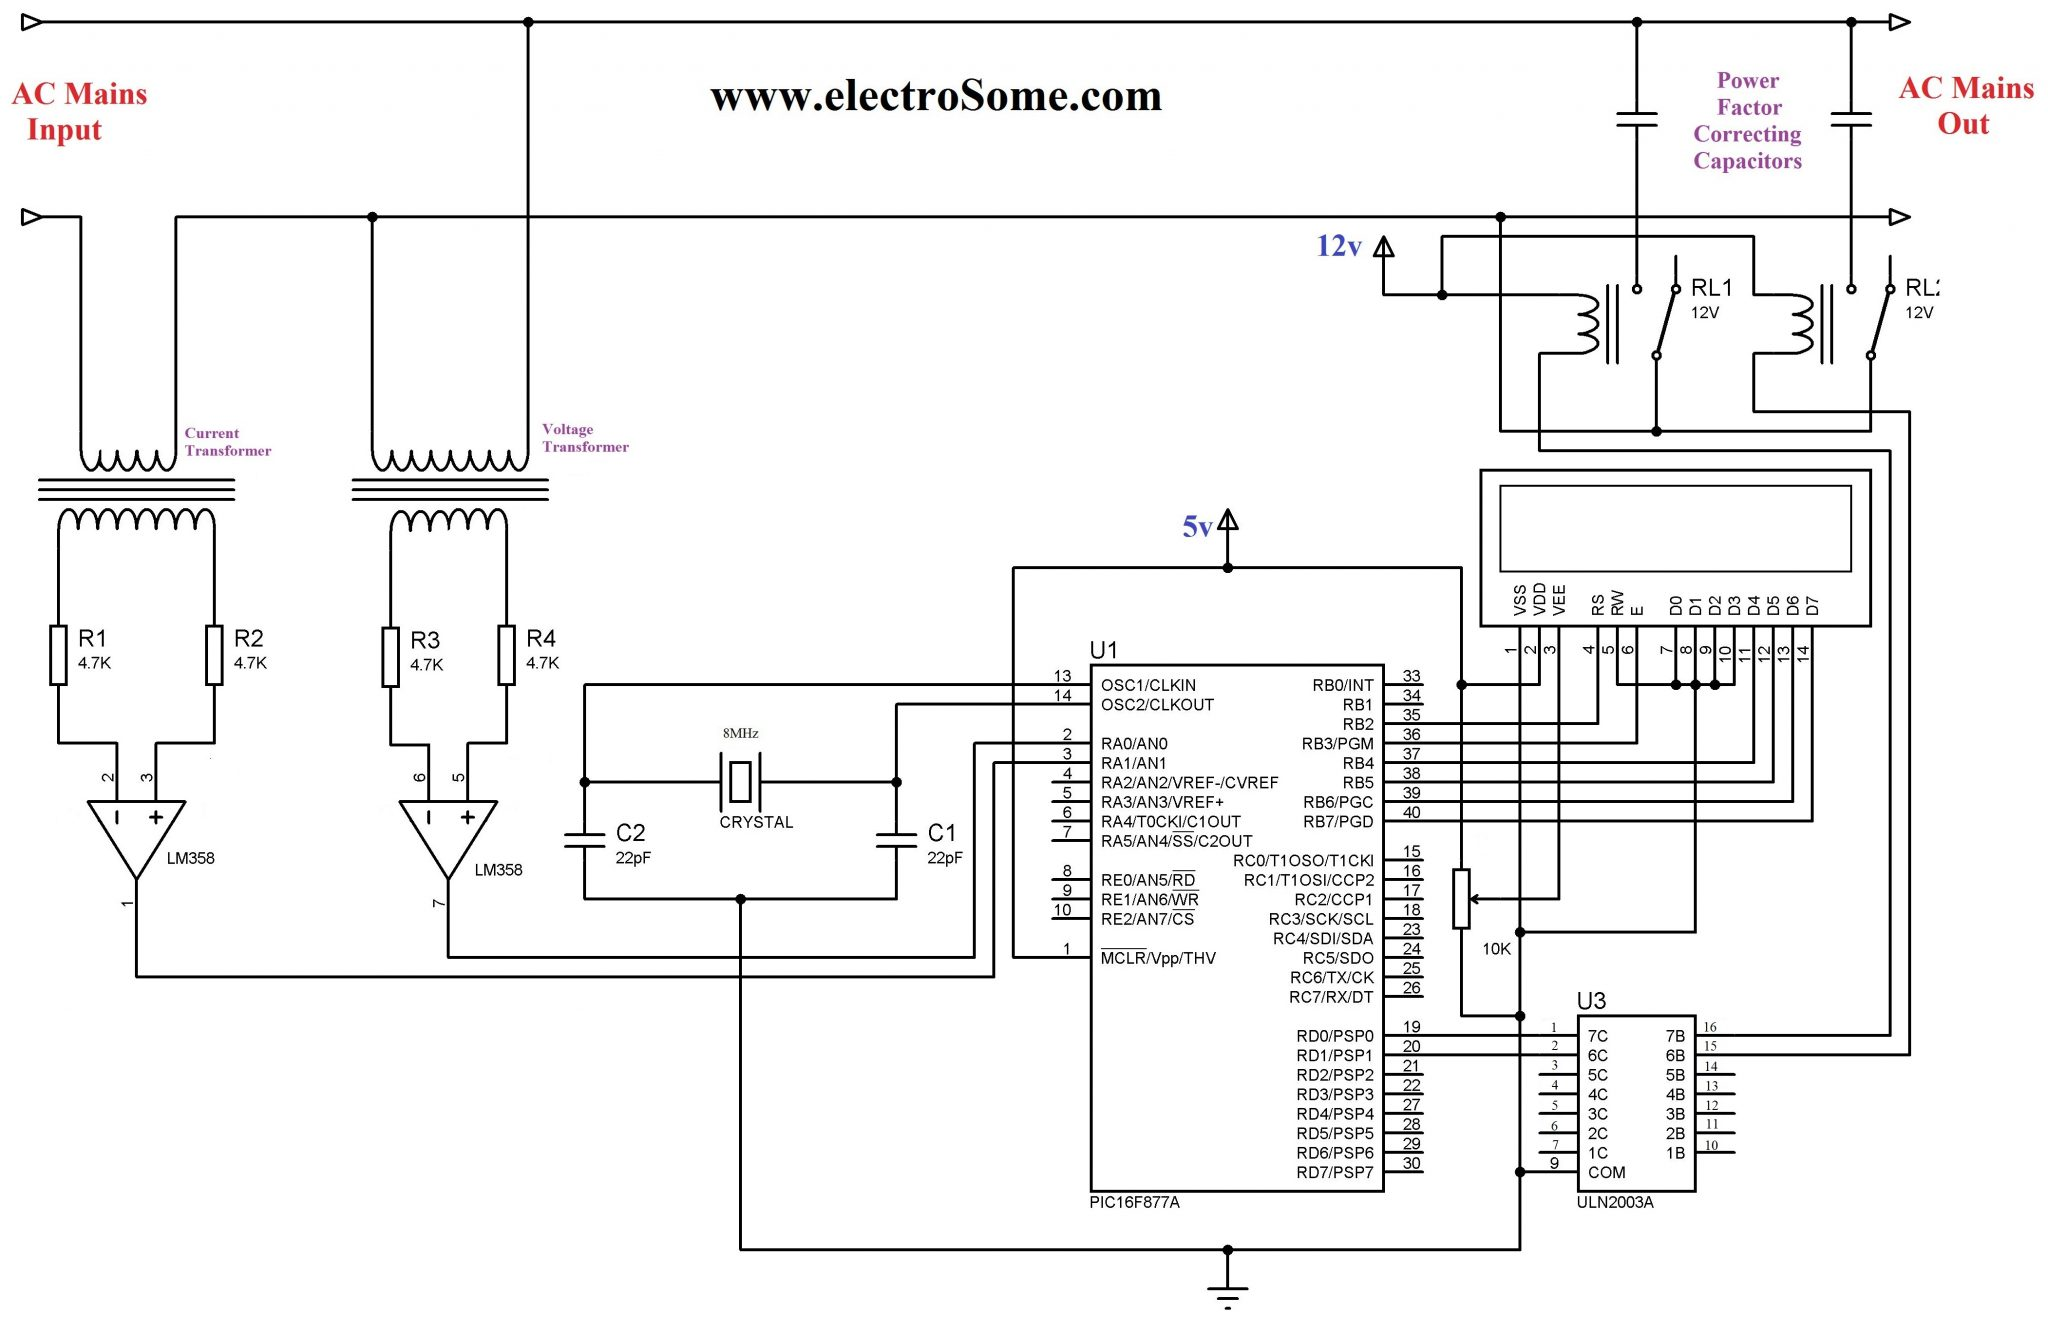 Automatic Power Factor Controller Using Pic Microcontroller Based Schematics Circuits Projects And Tutorial Circuit Diagram